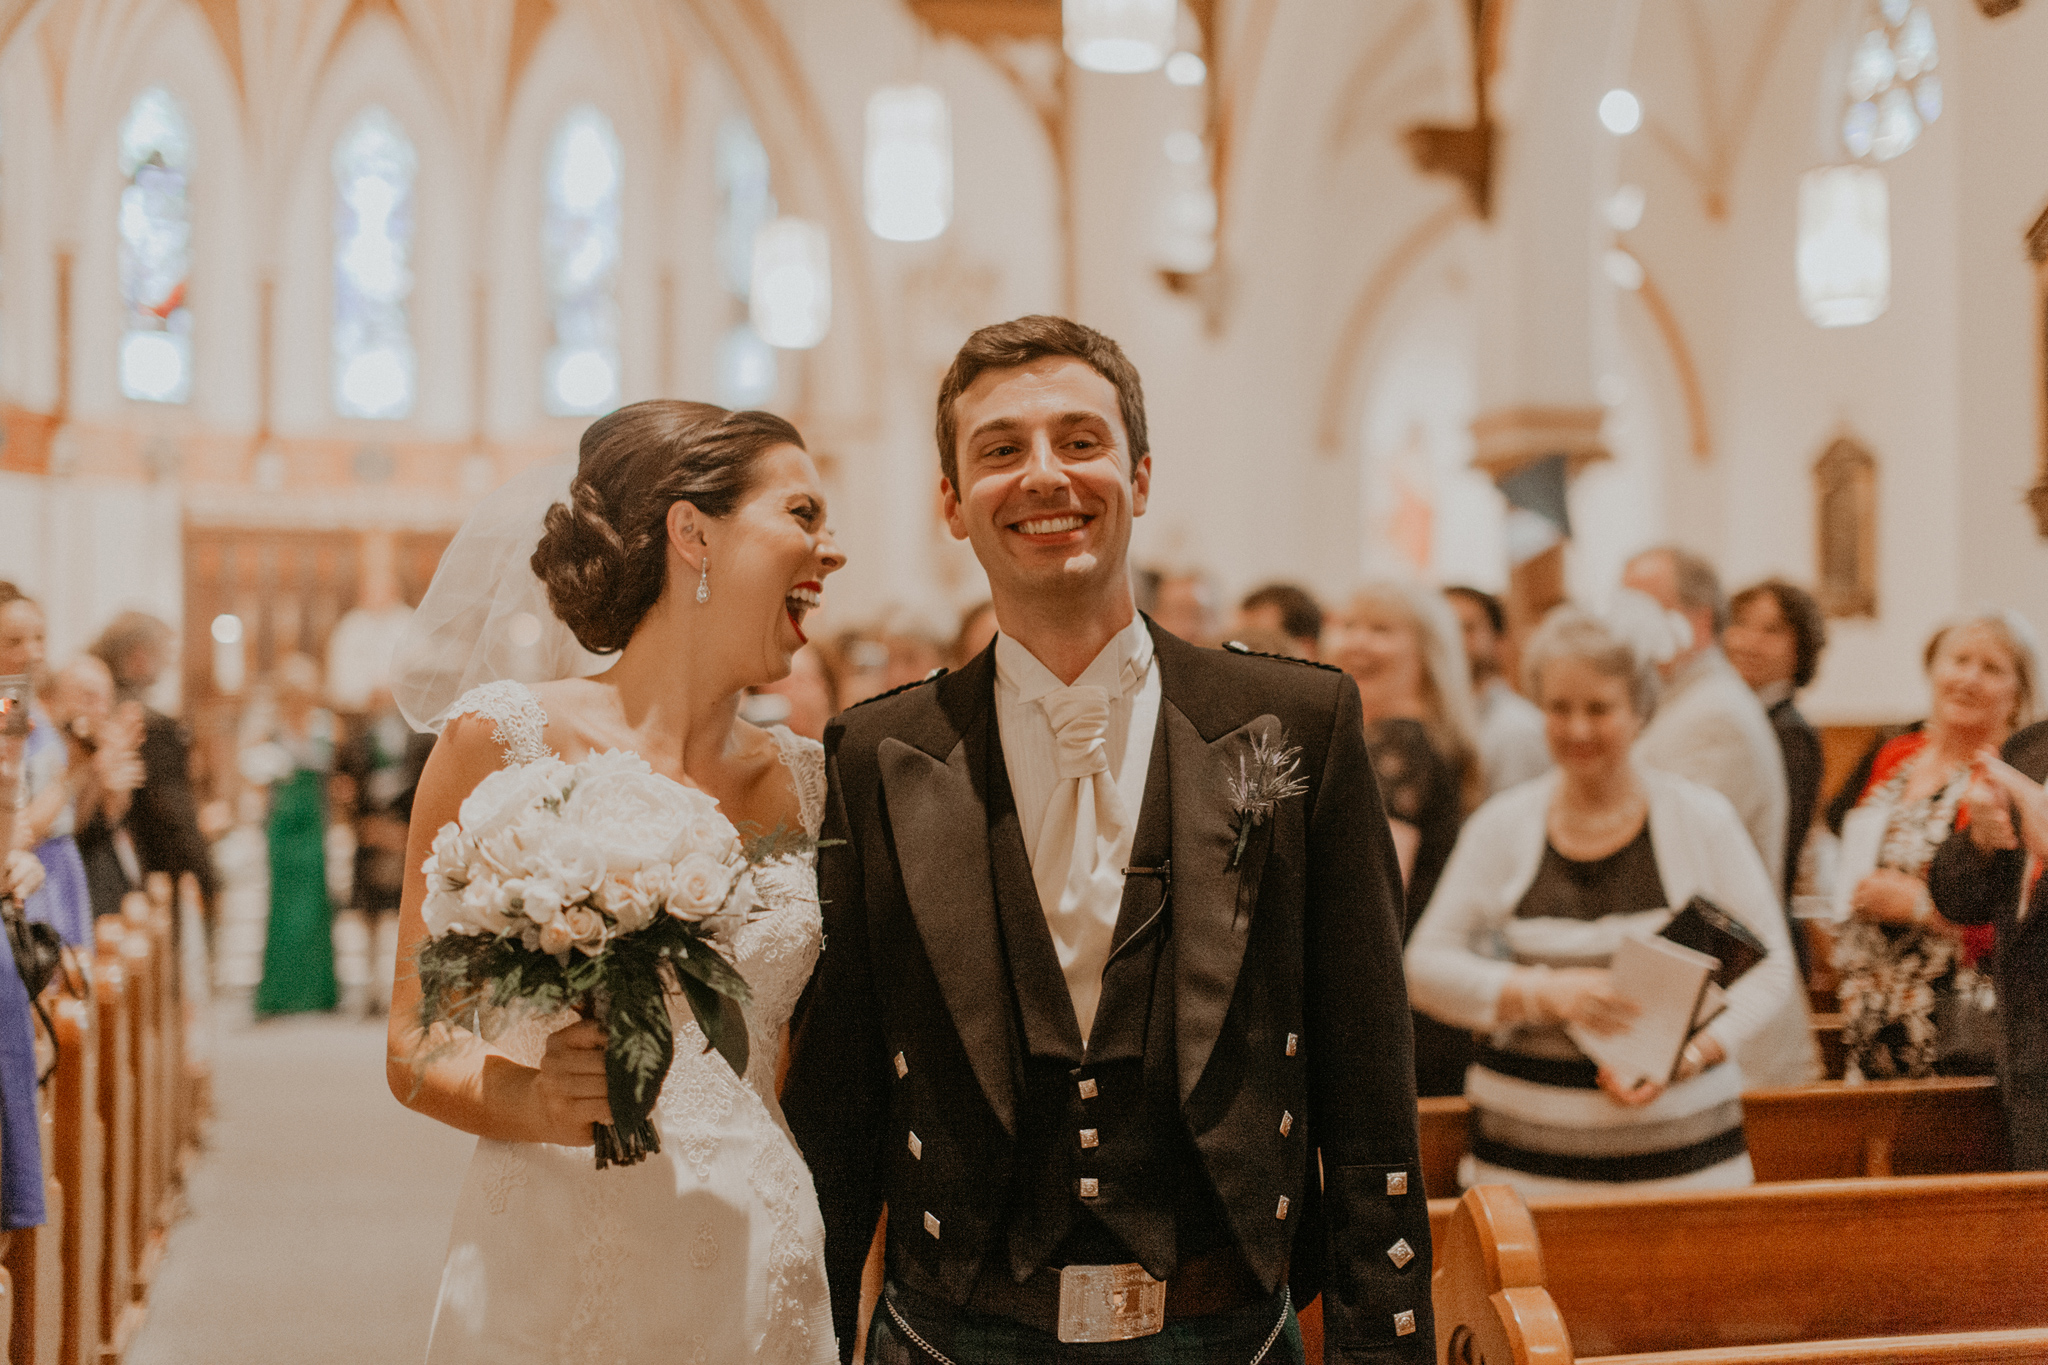 Bride and groom recessional in Scottish church wedding